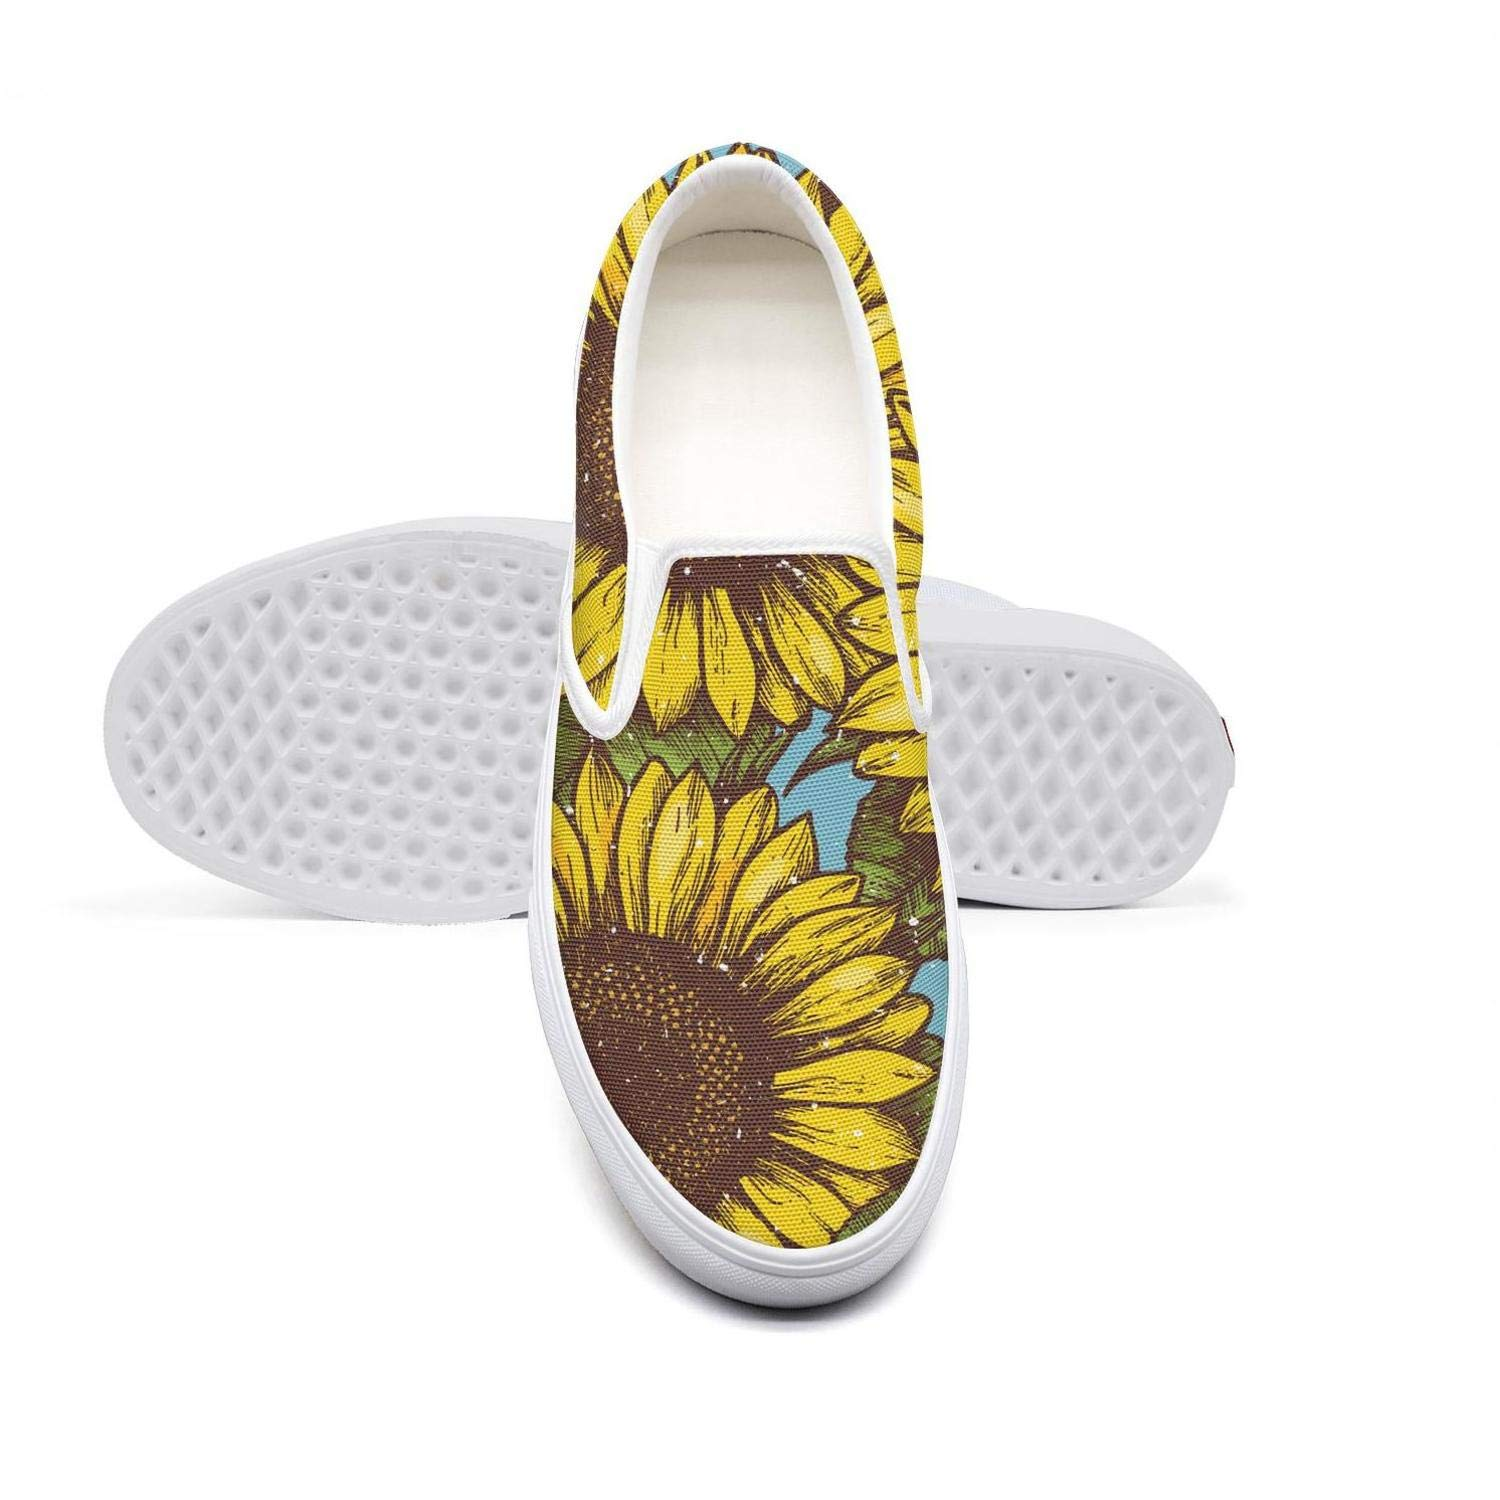 LOKIJM Sun Flowers with Polka dots Pattern Tennis Shoes for Women Fashion Non-Slip Running Shoes